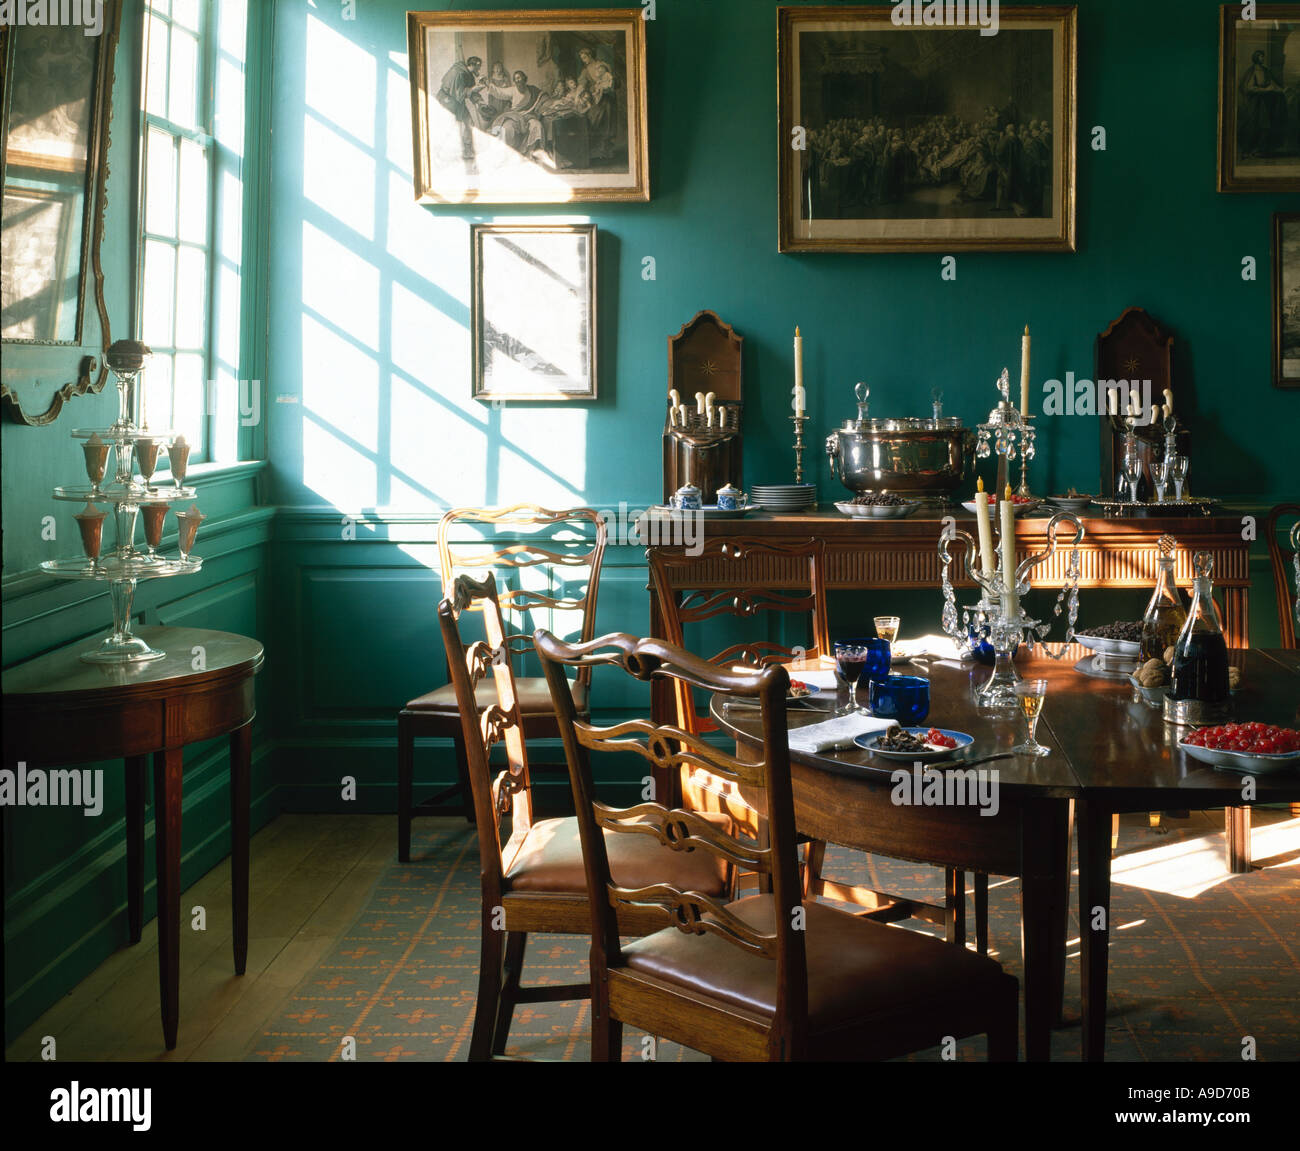 Mount Vernon Dining Room: Mount Vernon, Virginia, USA